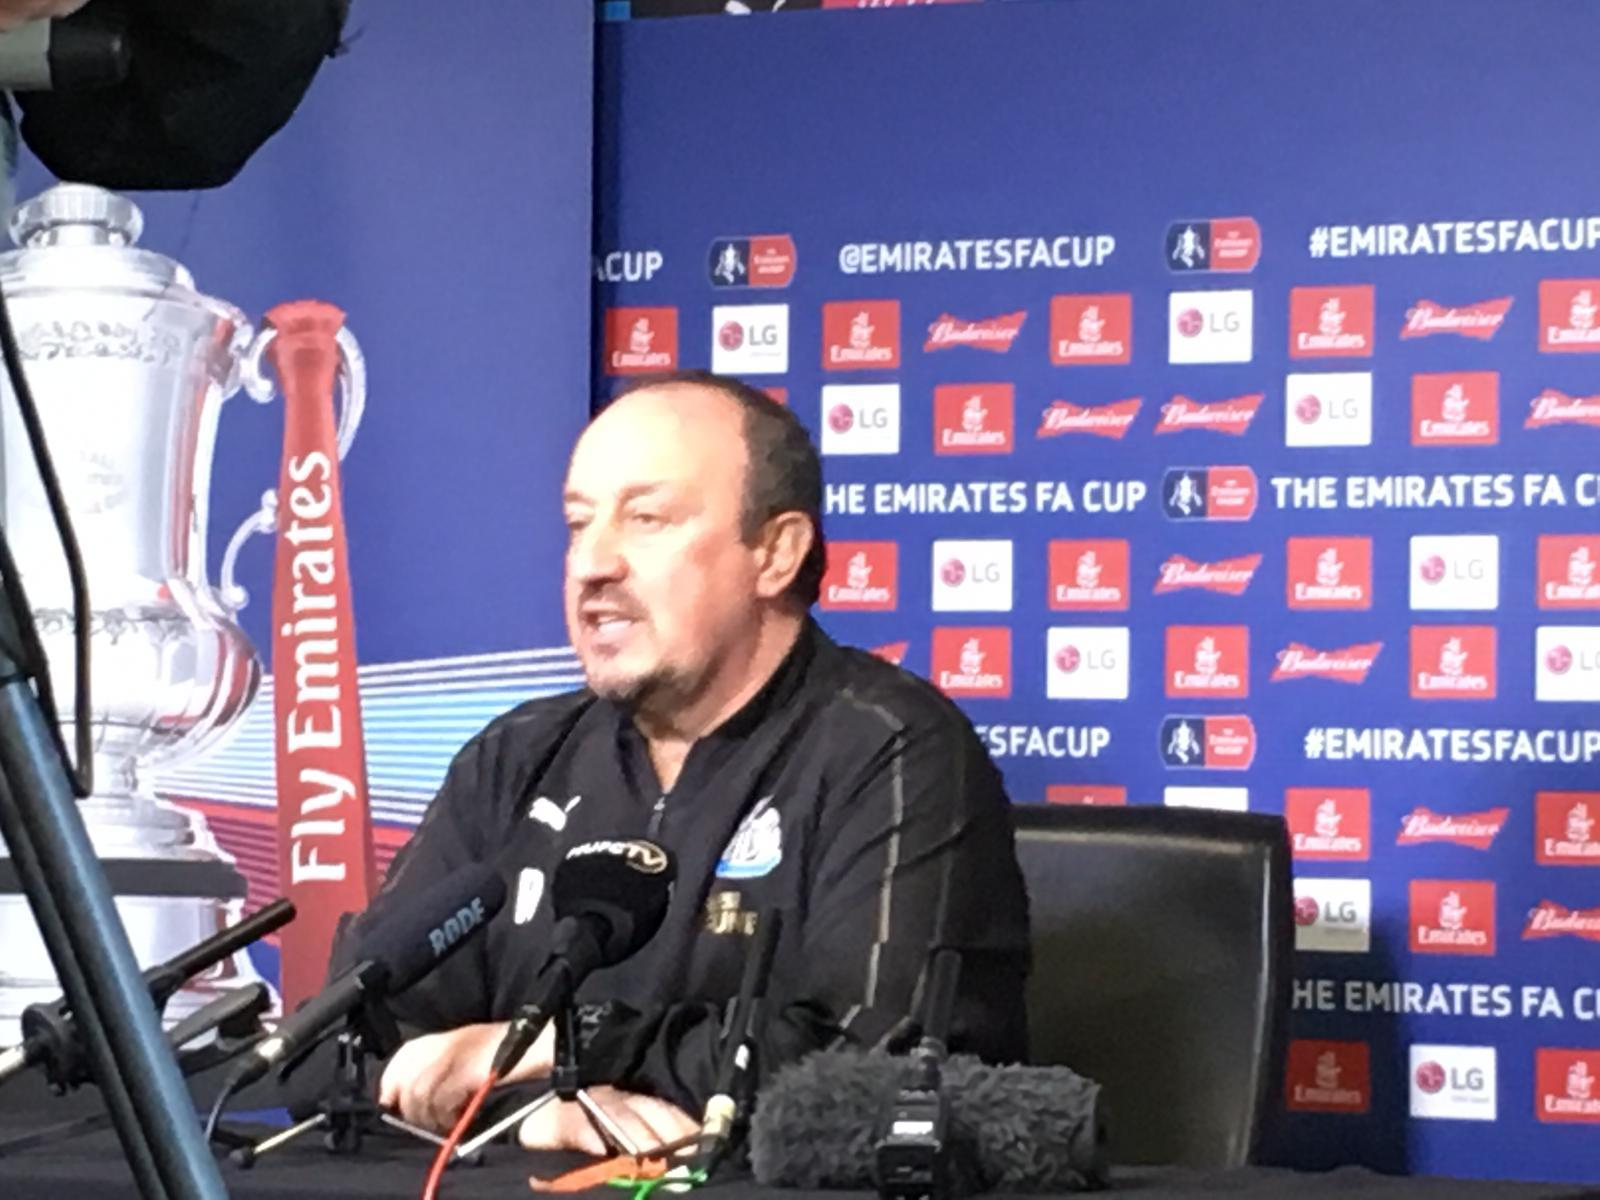 Blackburn v Newcastle: Rafael Benitez defends FA Cup selections